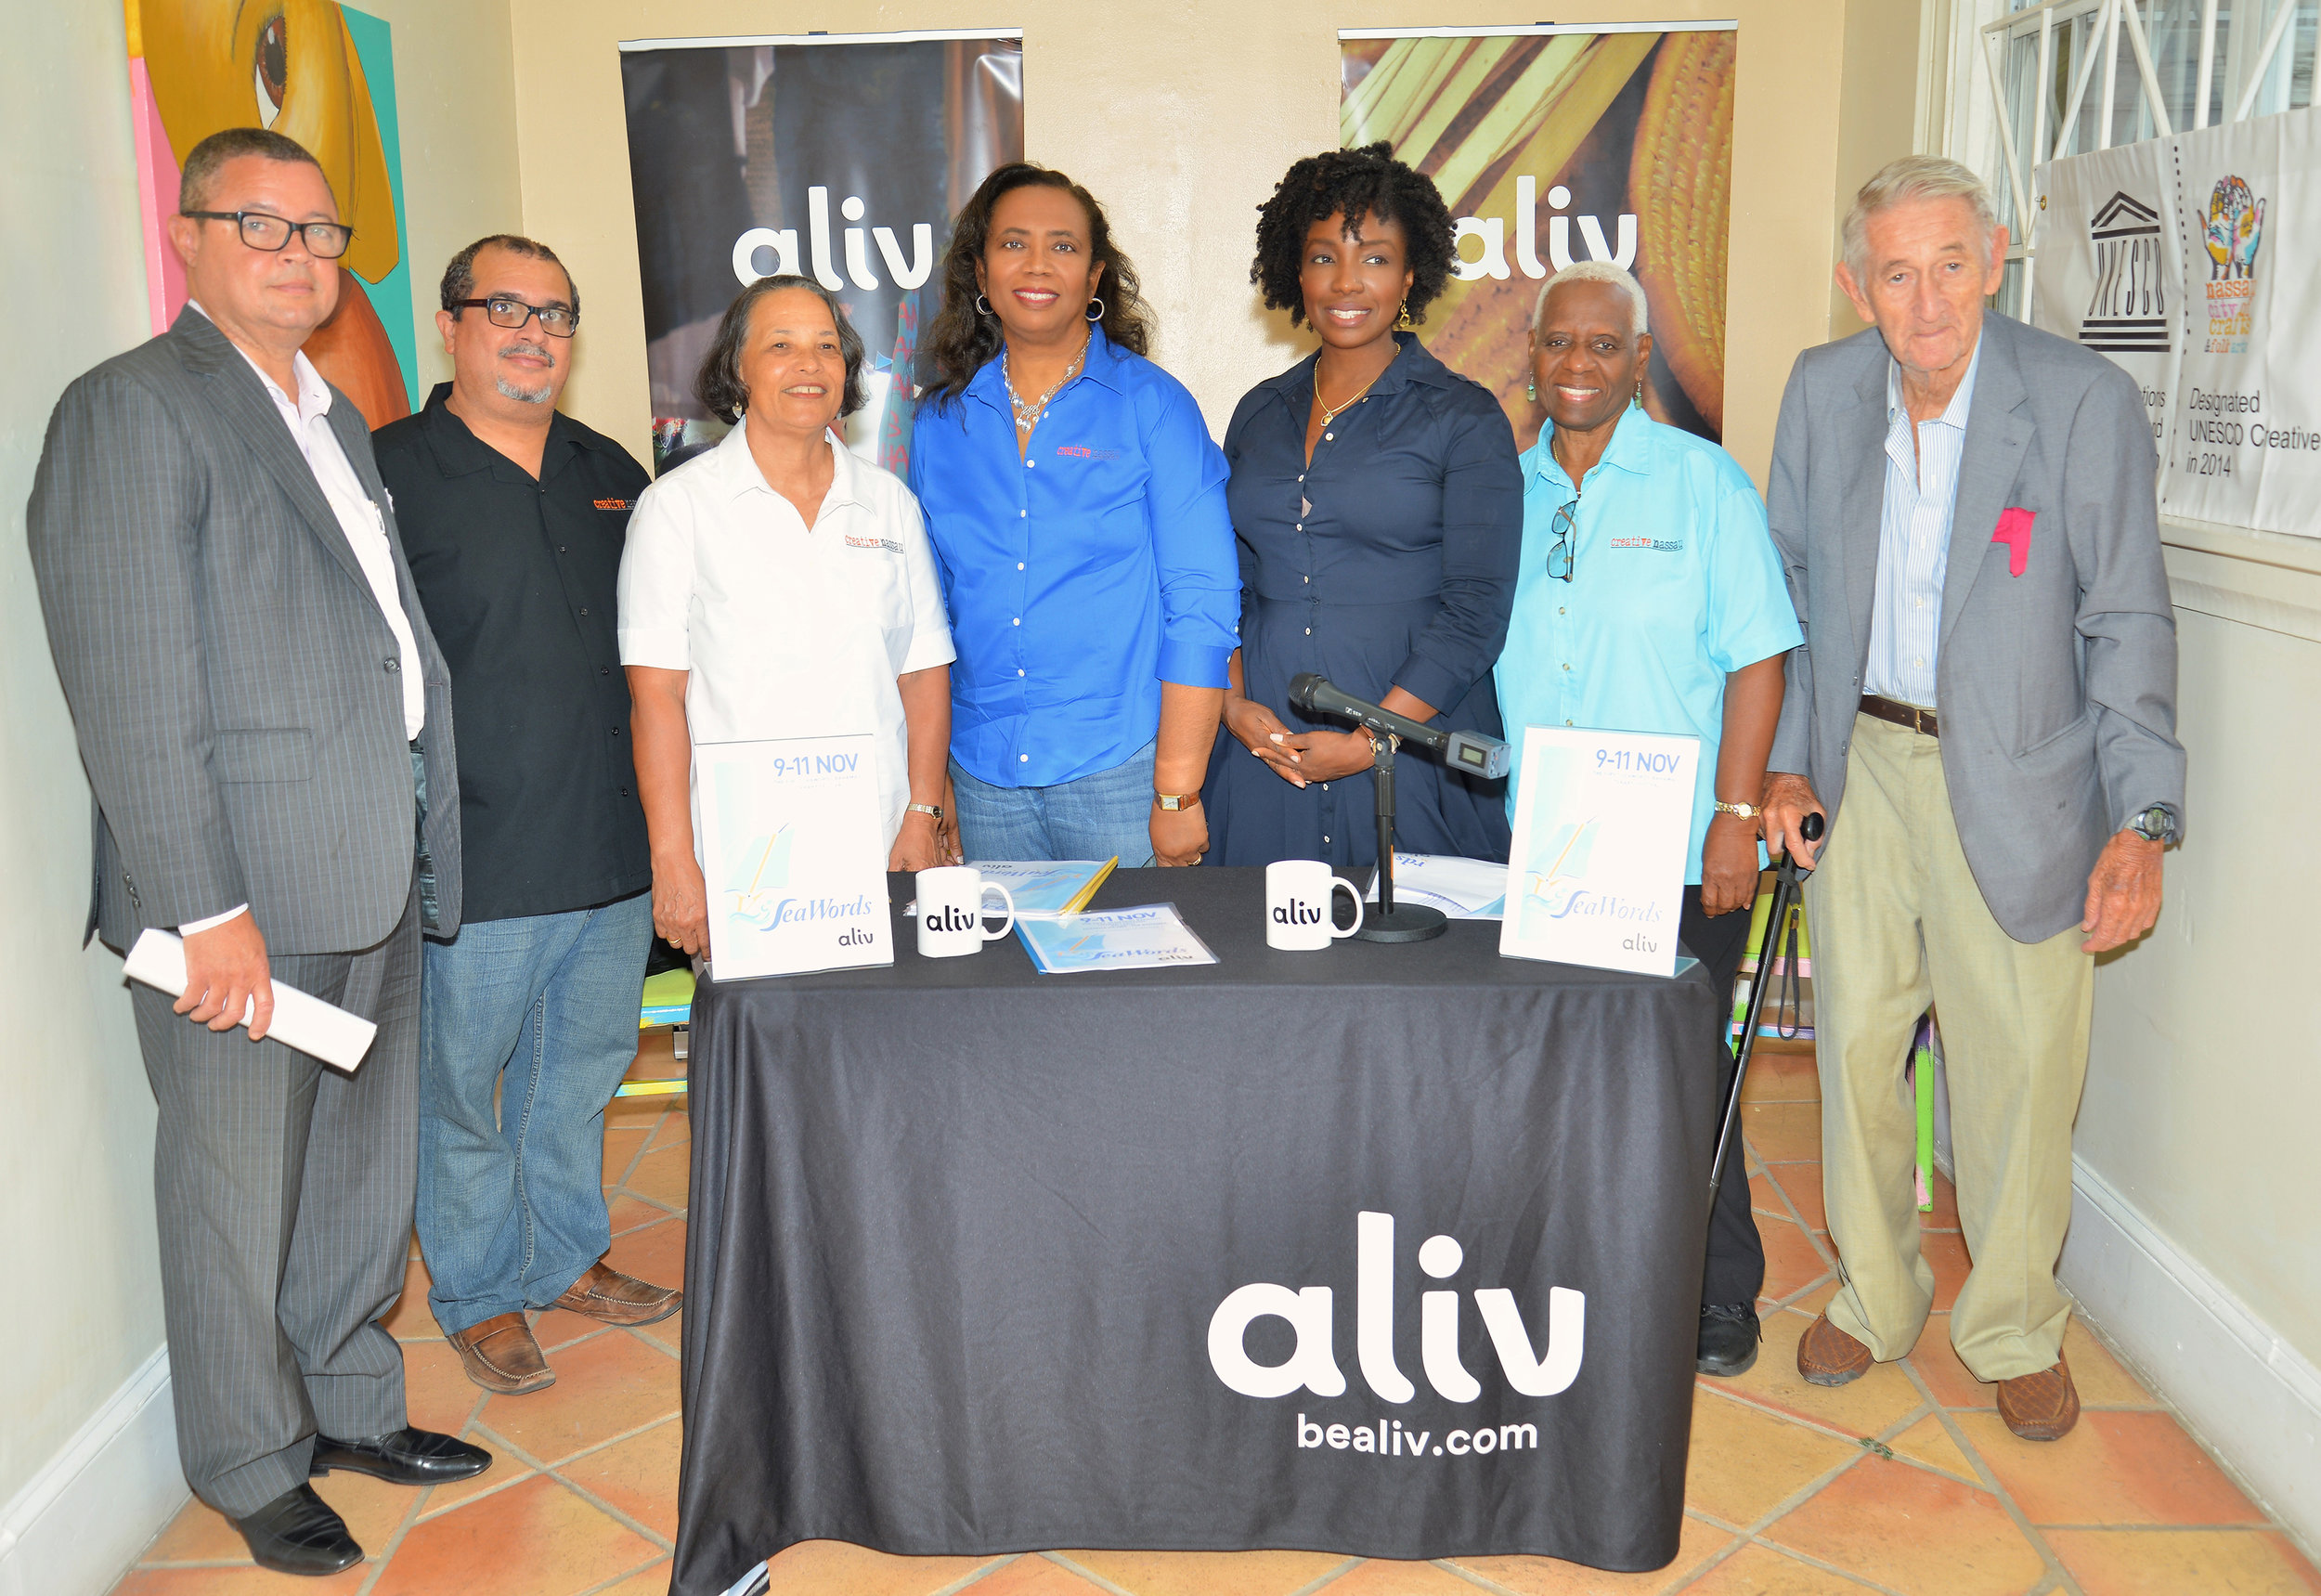 Members of the SeaWords Bahamas ALIV Committee and Sponsors at the June Press Launch - left to right:Paul McWeeney. Sponsor from Sunshine Group of Companies, Neko Meicholas, Pam Burnside, Patricia Glinton-Meicholas SeaWords Chair, Title Sponsor ALIV's Gravette Brown, Rosemary Hanna, and Richard Coulson